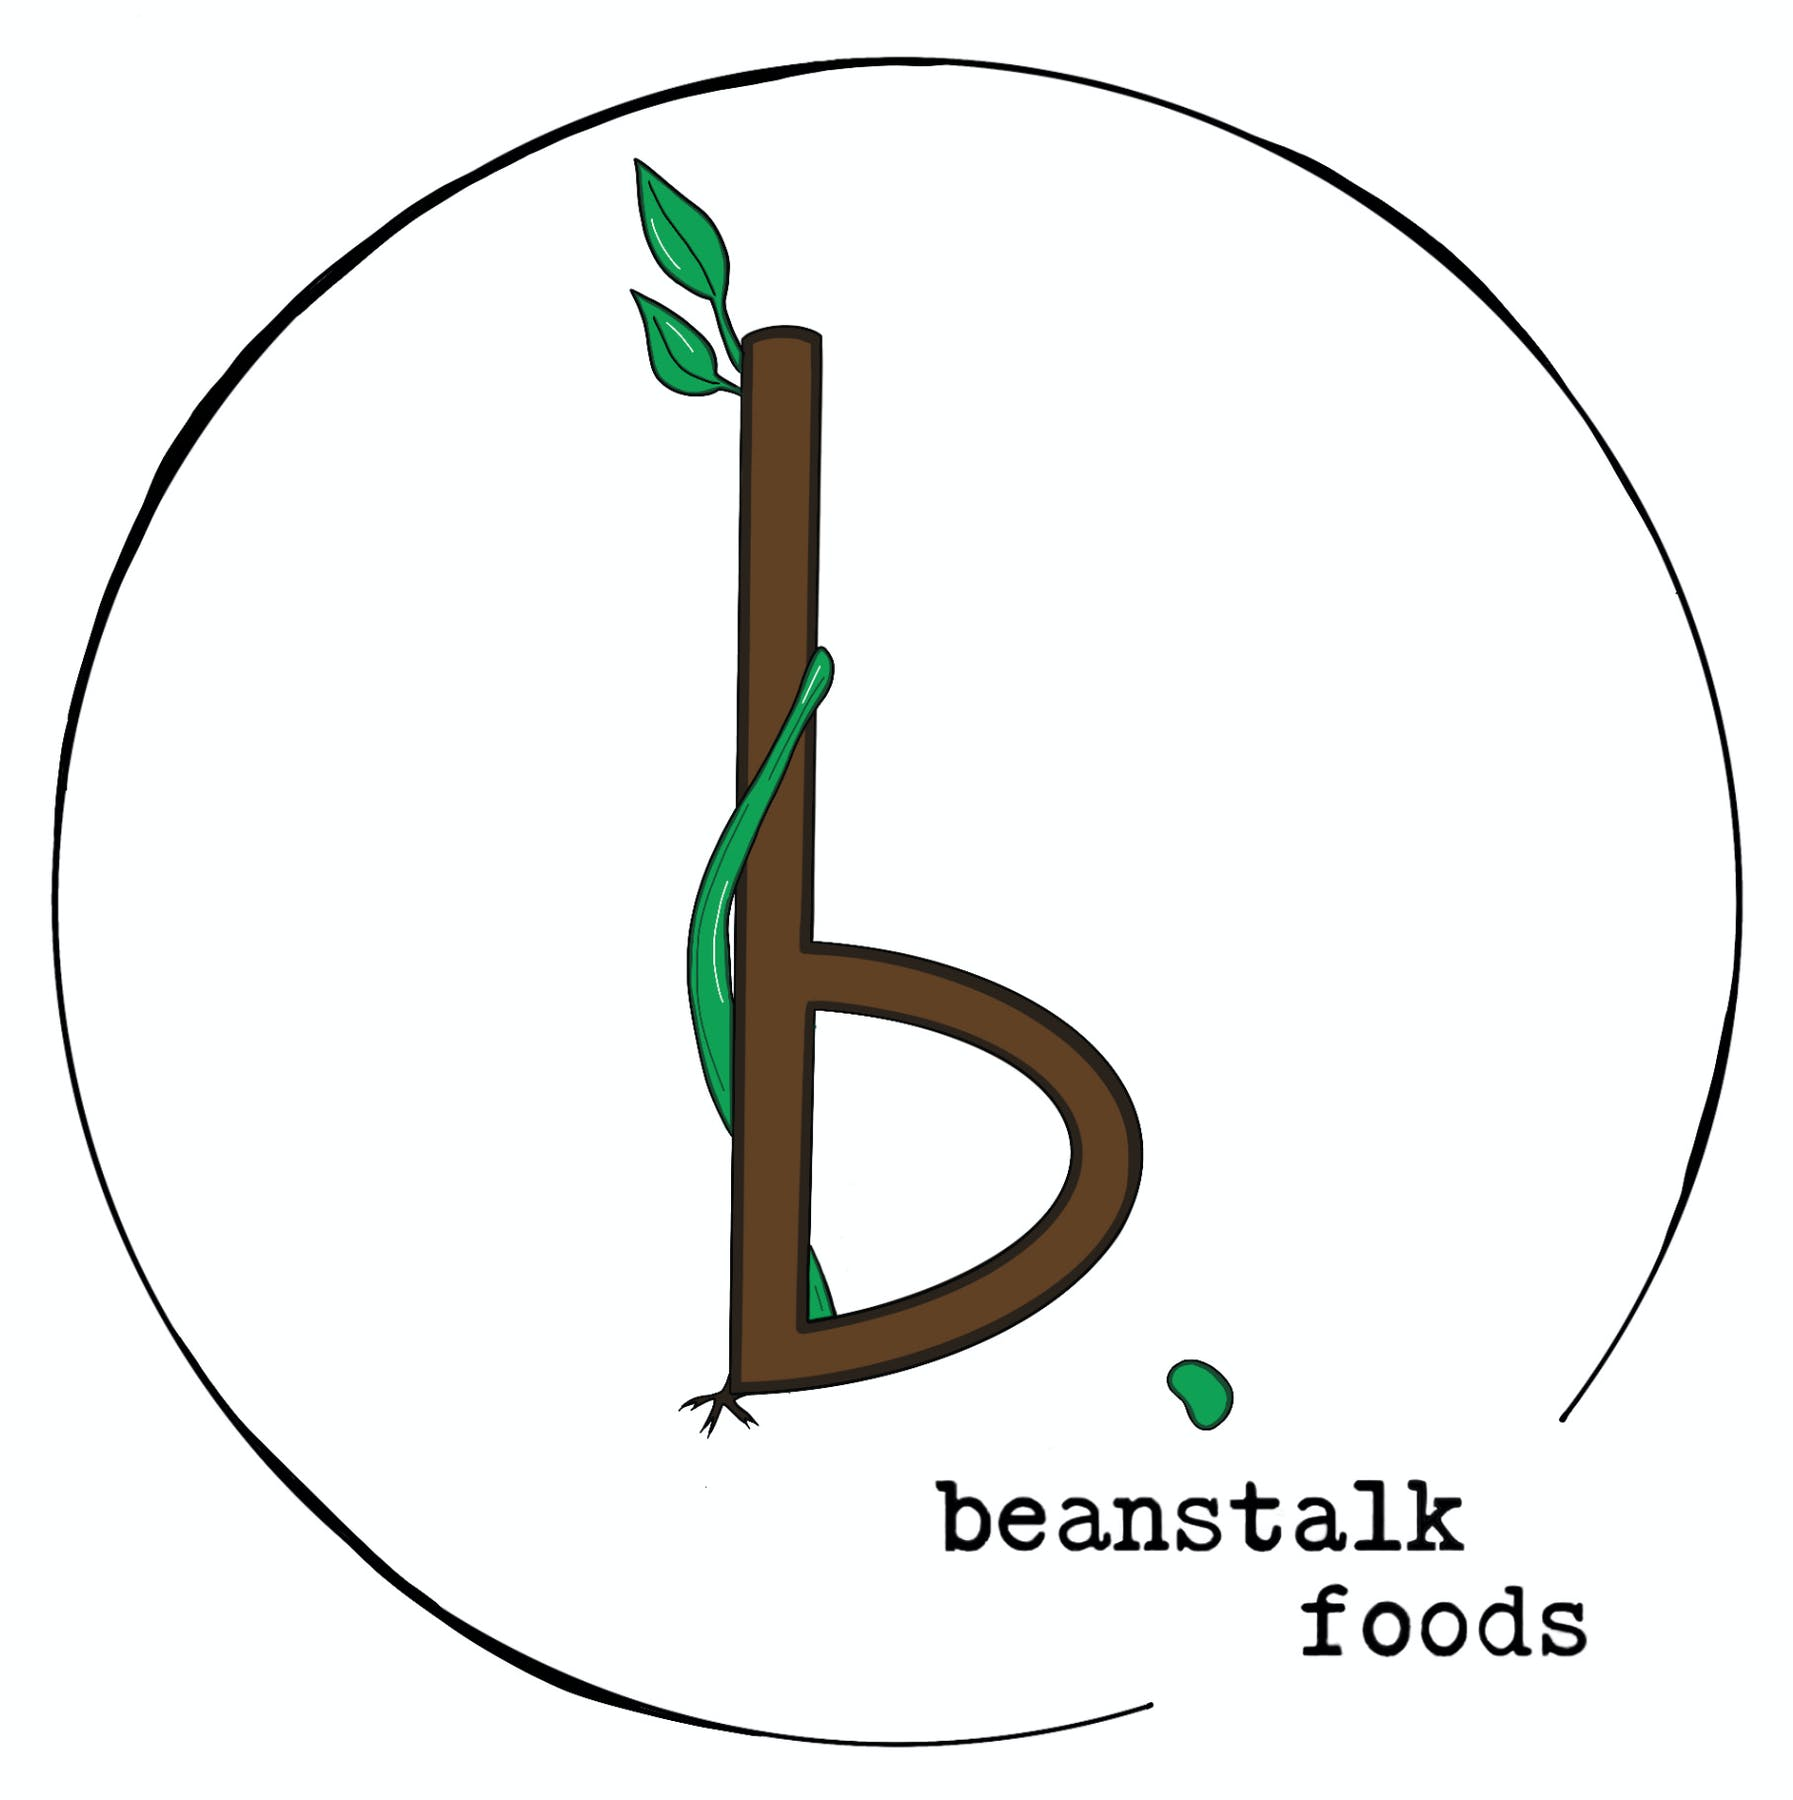 beanstalk foods Home